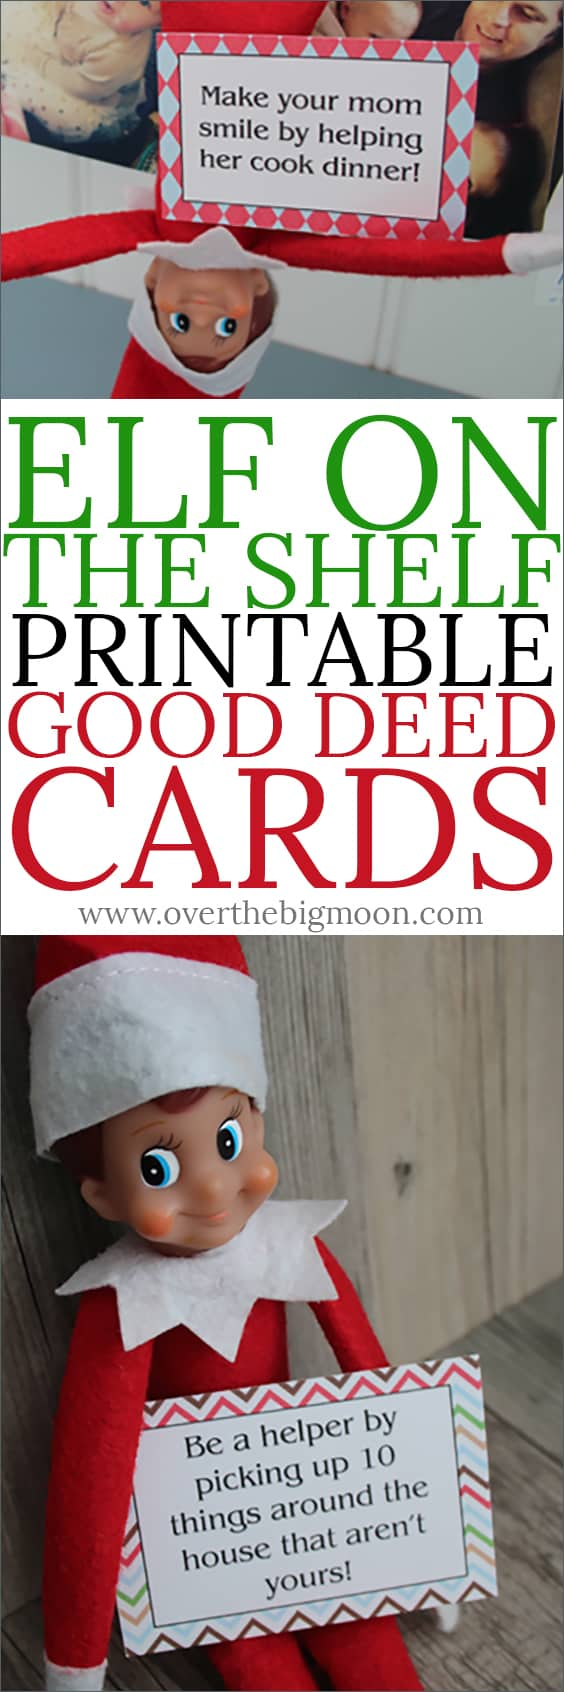 Not all Elf's are naughty! These Good Deed cards are perfect to have your Elf encourage your littles to do some good deeds! Just download and print the cards! From overthebigmoon.com!